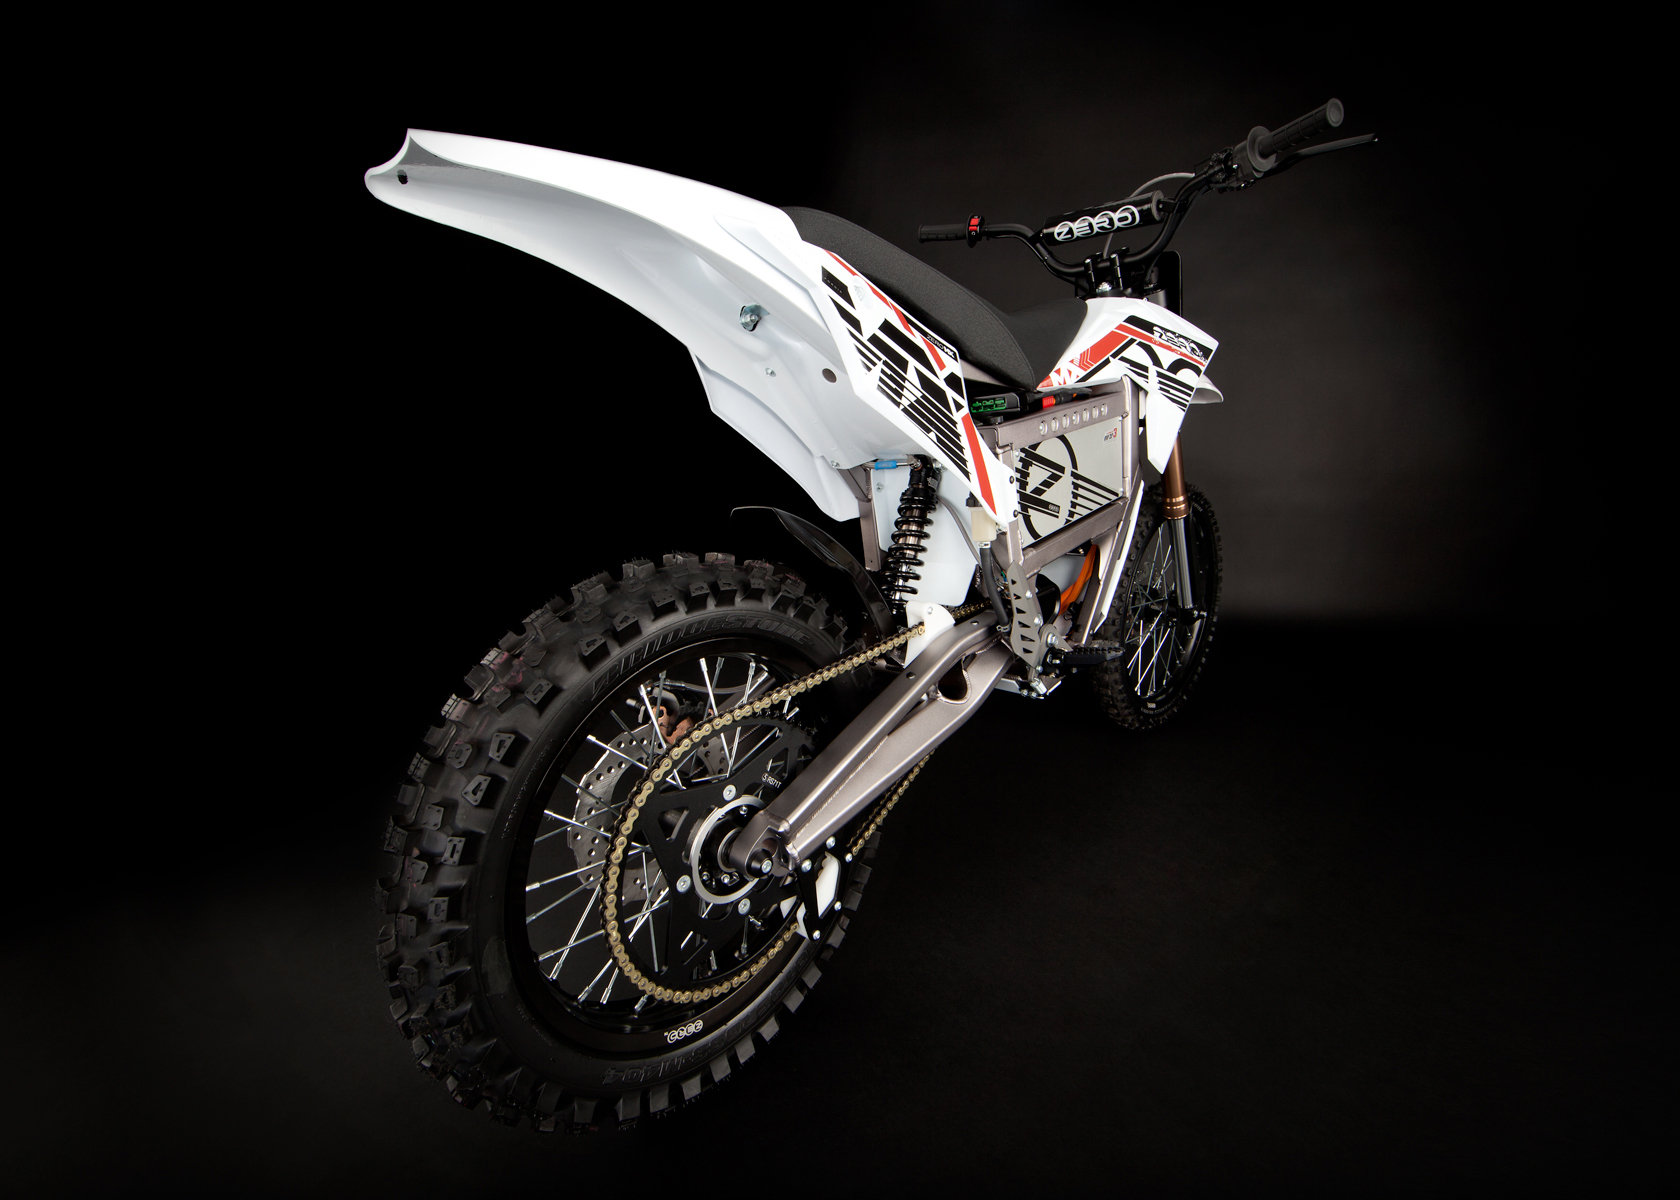 '.2012 Zero MX Electric Motorcycle: Angle Right, Rear View, Wide.'